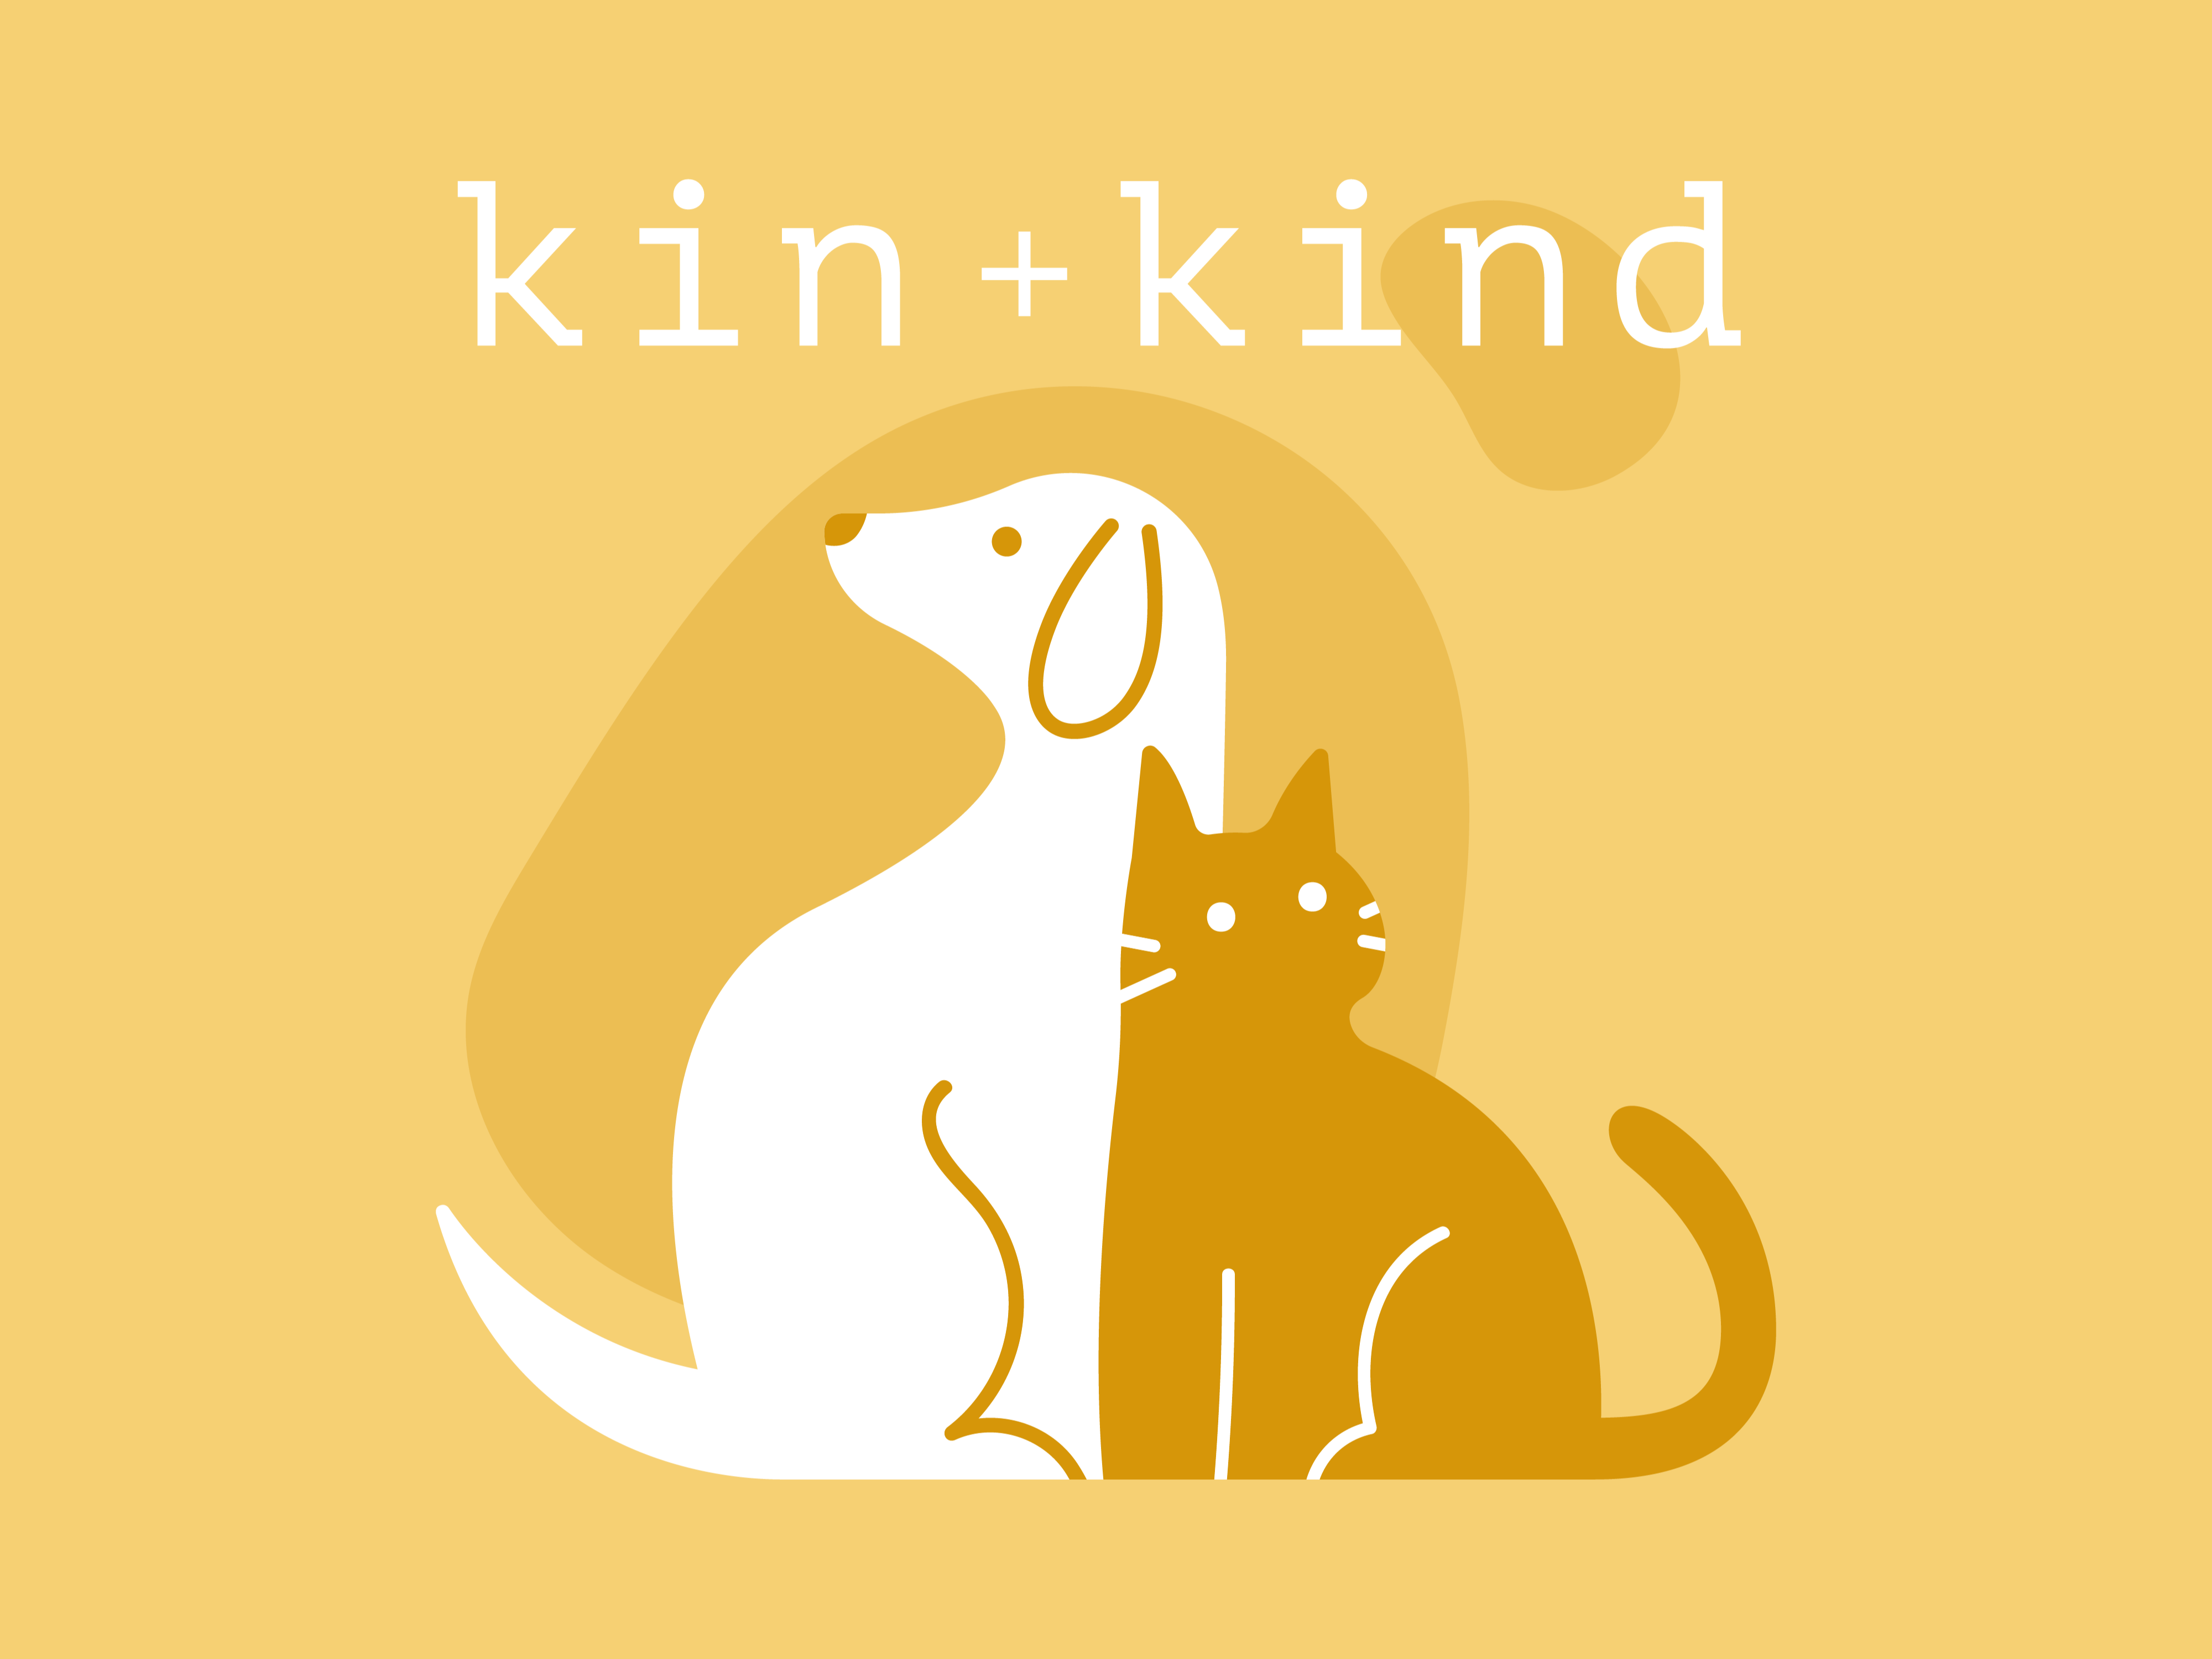 kin + kind brand logo in yellow with illustration of dog and cat under brand name